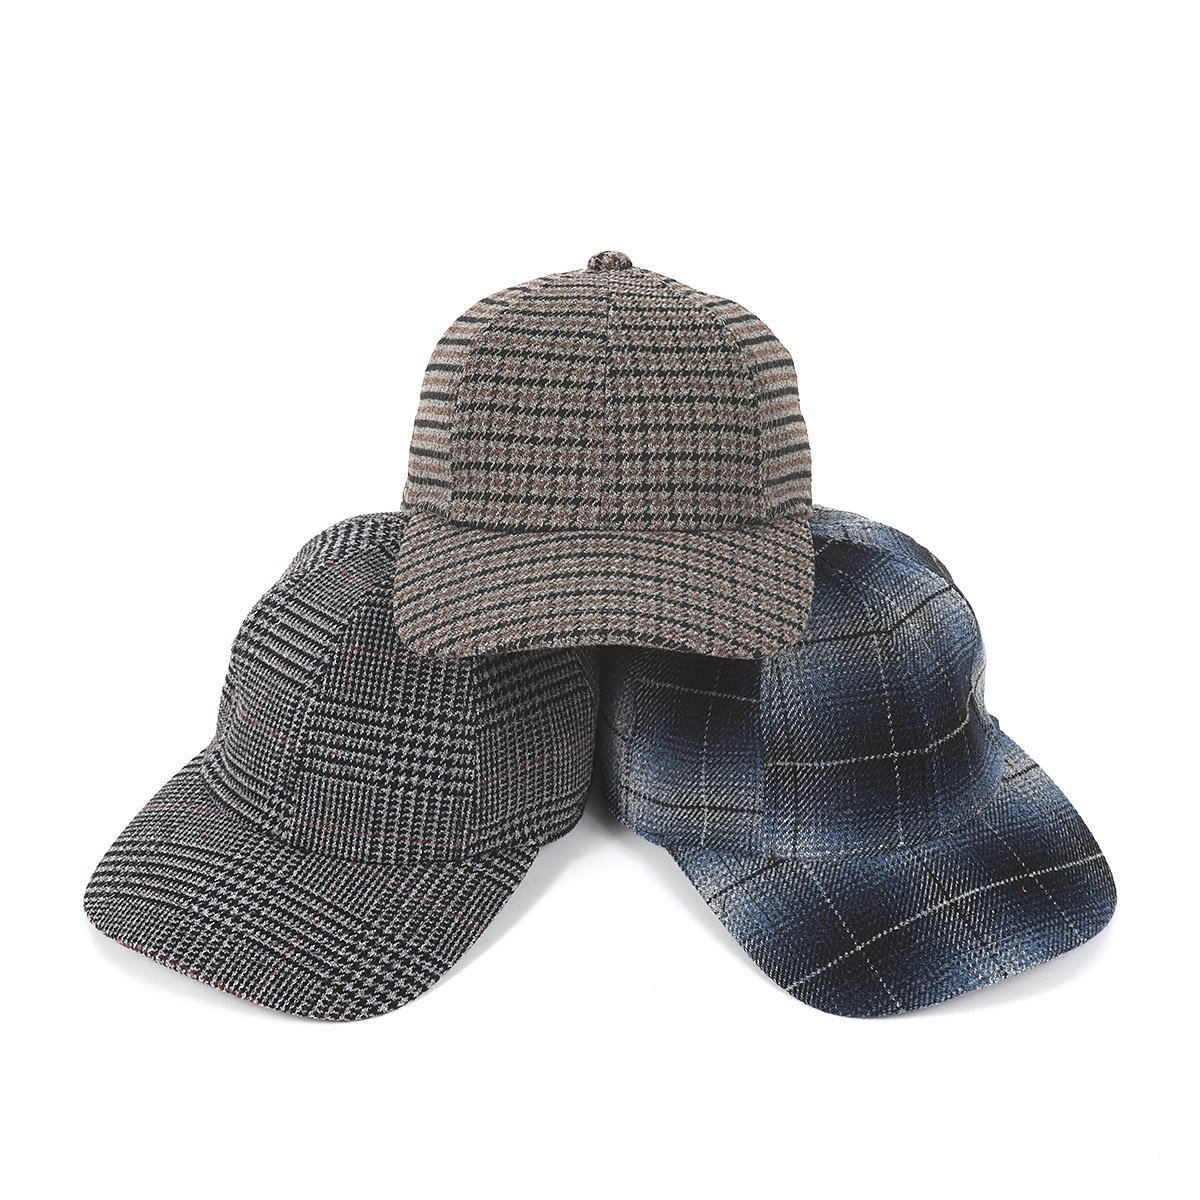 TECHTWEED 8PANEL CAP<img class='new_mark_img2' src='https://img.shop-pro.jp/img/new/icons41.gif' style='border:none;display:inline;margin:0px;padding:0px;width:auto;' />